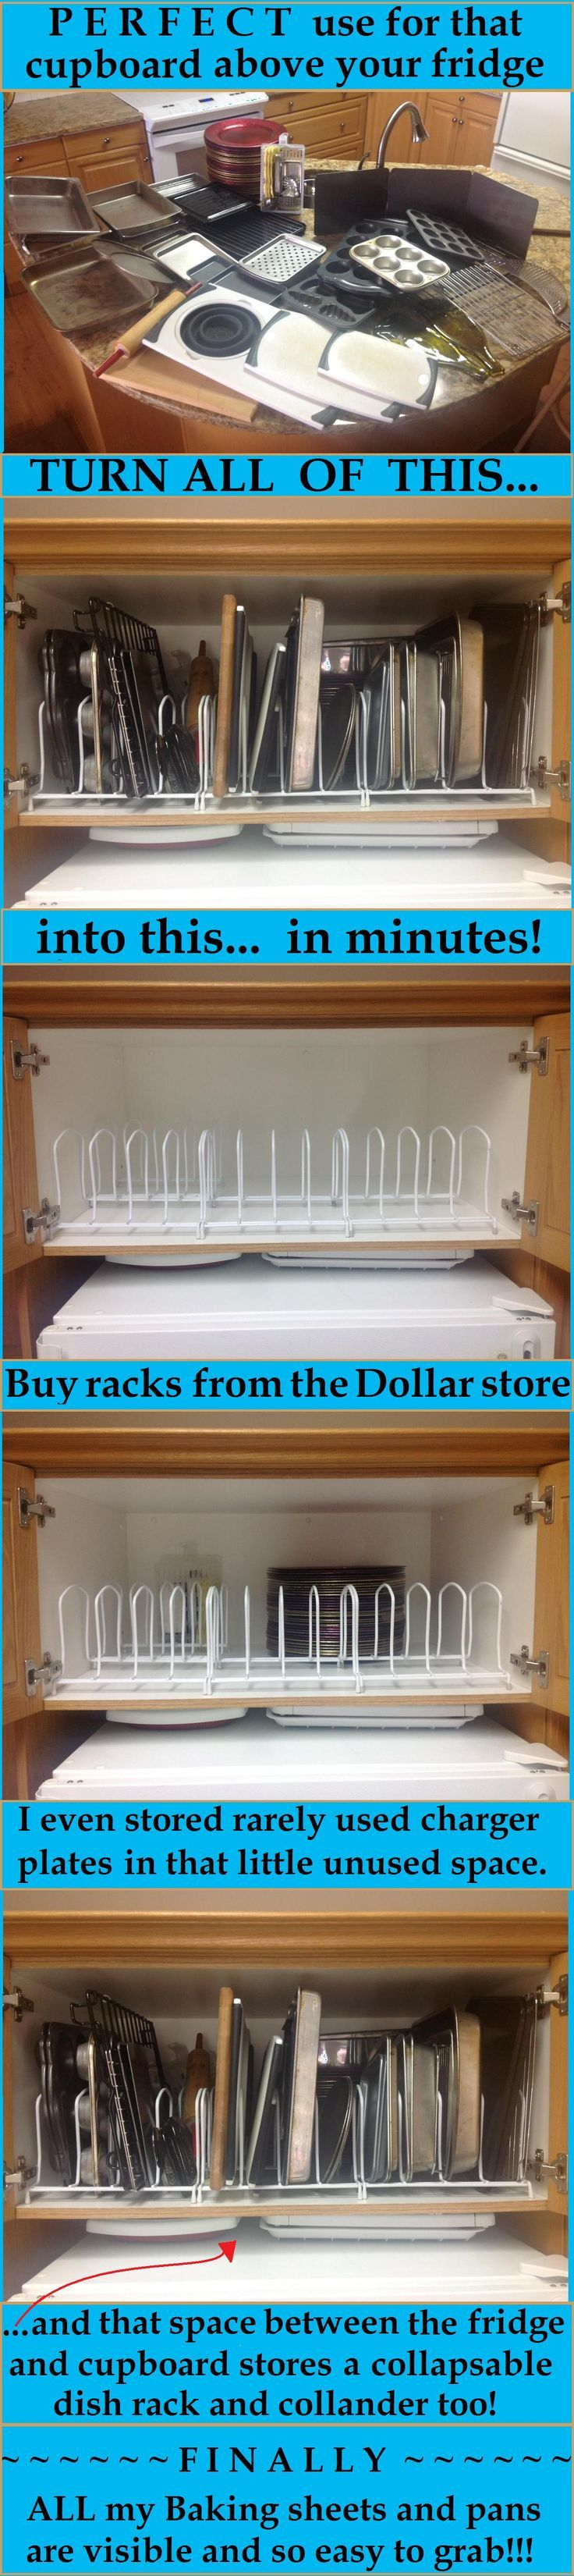 Dollar store dish racks to separate the pans and lids in a cabinet